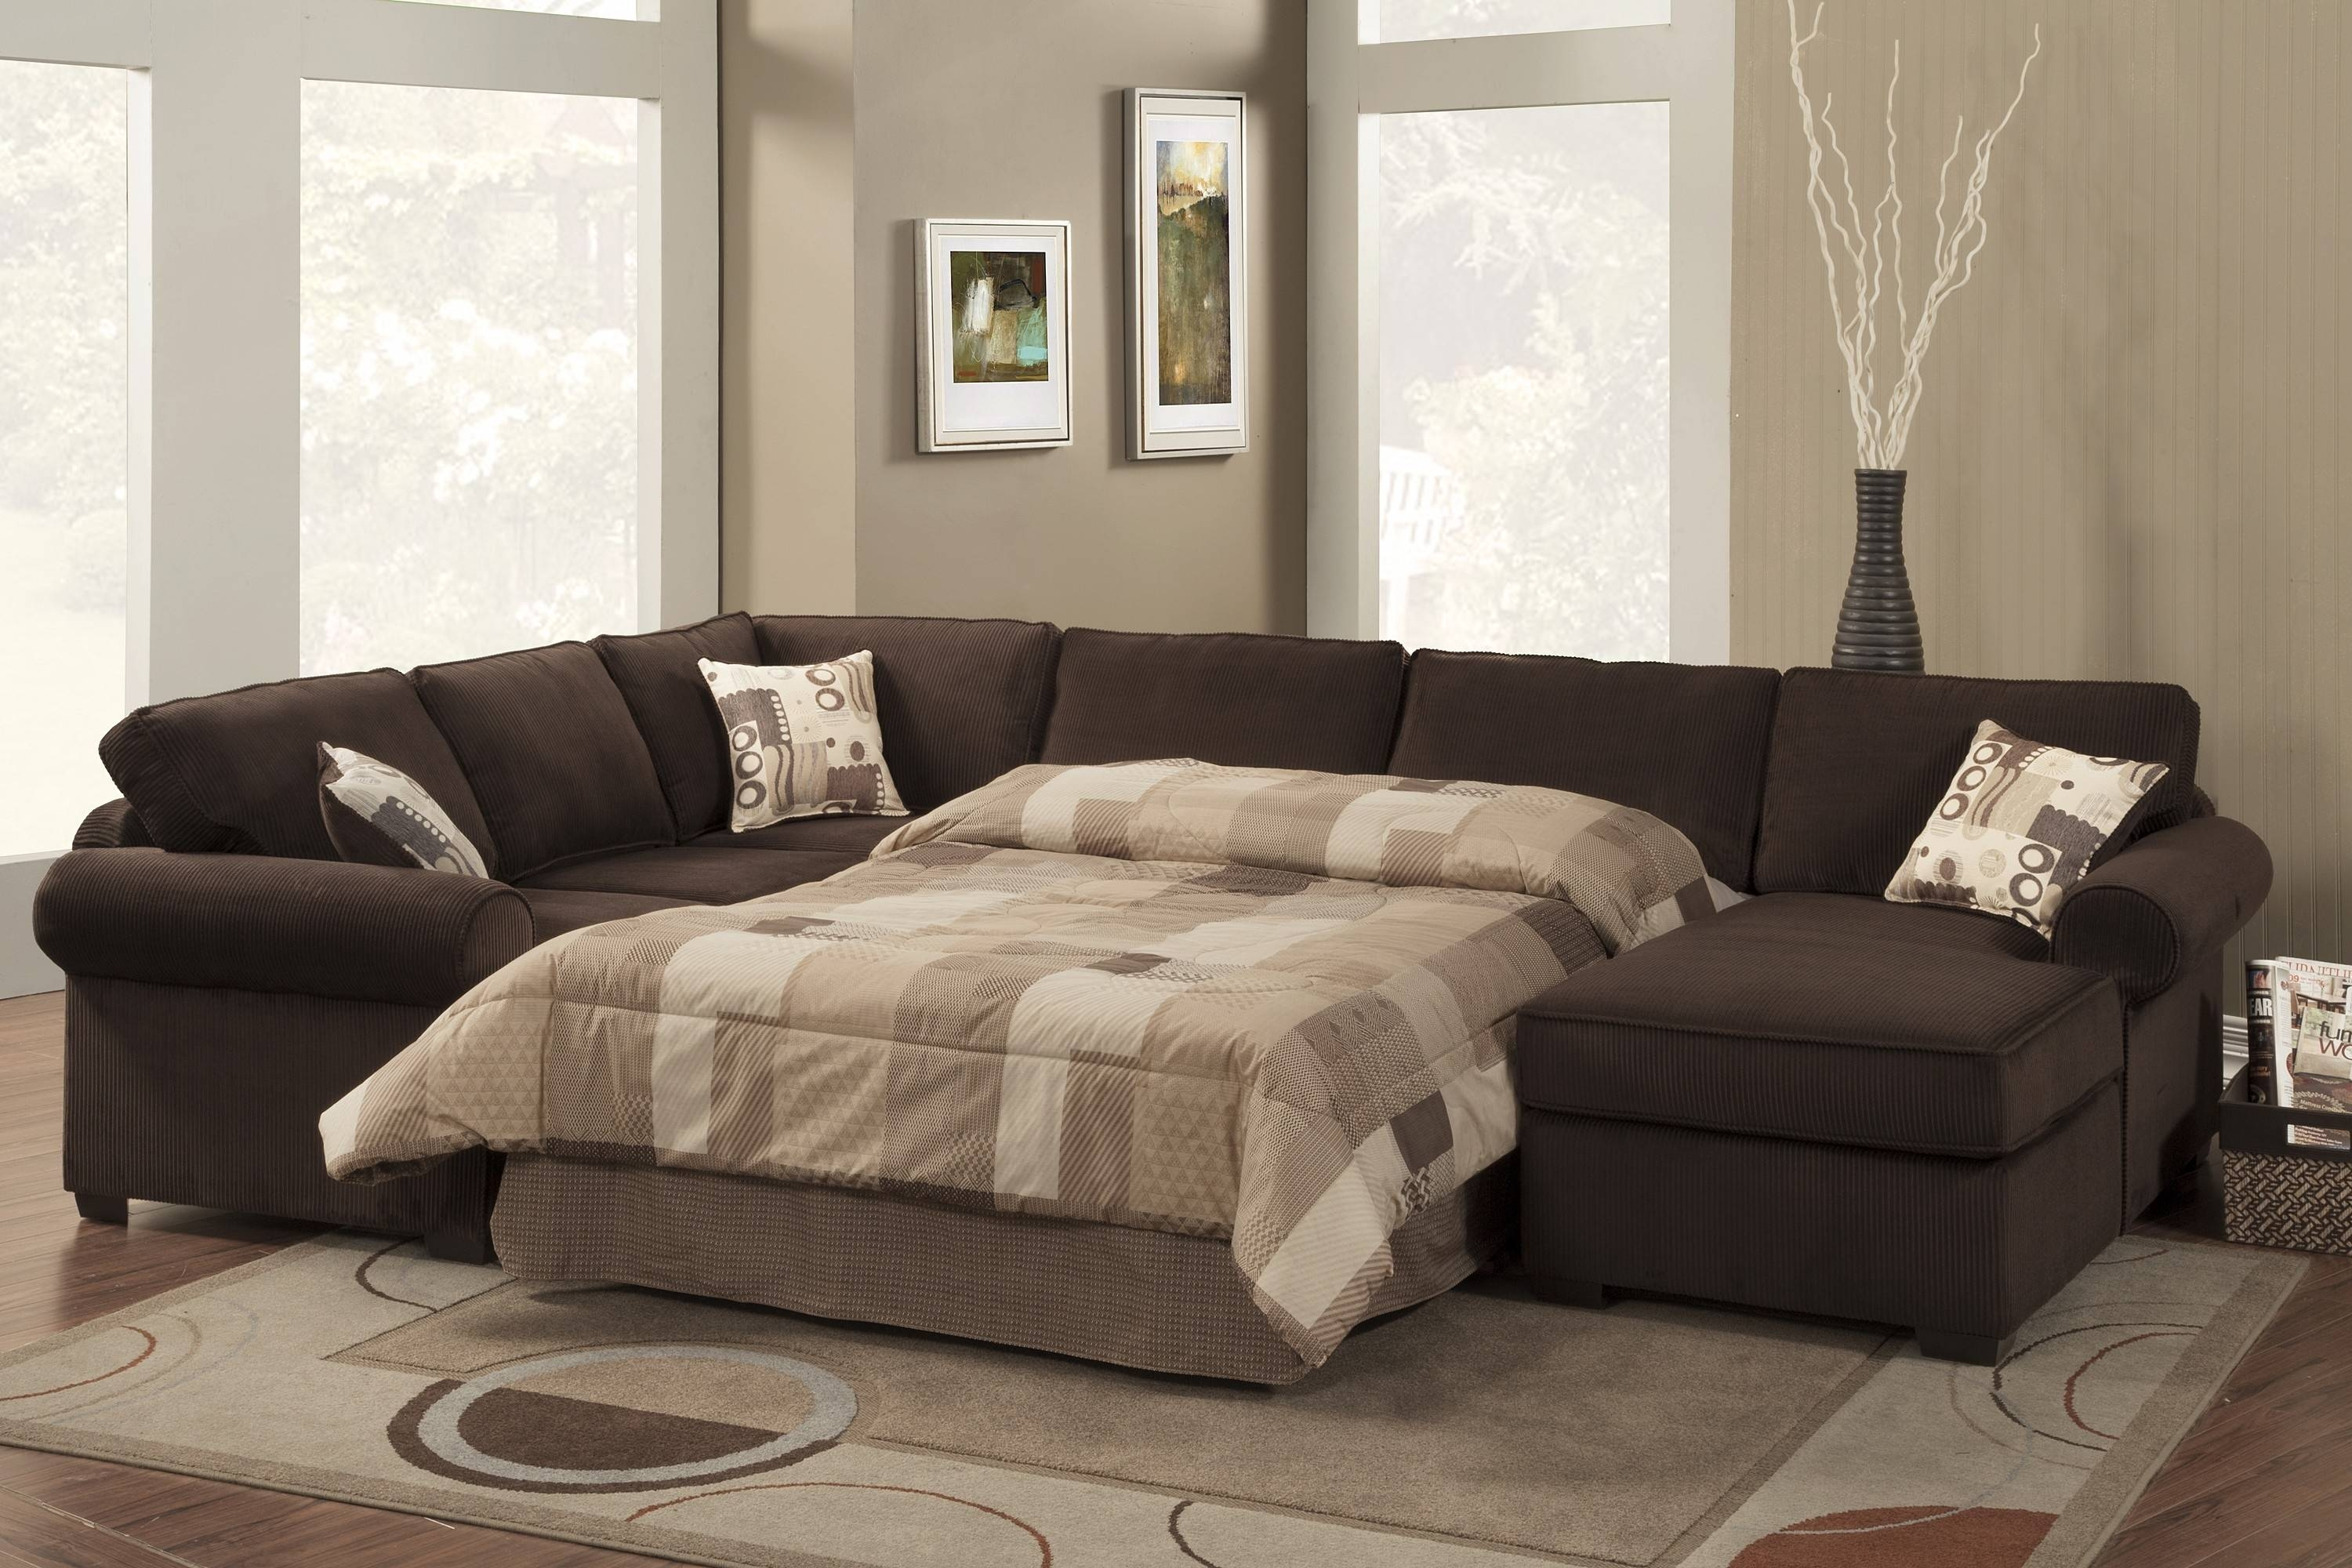 Sofa: Comfort And Style Is Evident In This Dynamic With Tufted with Sleeper Sectional Sofas (Image 23 of 30)